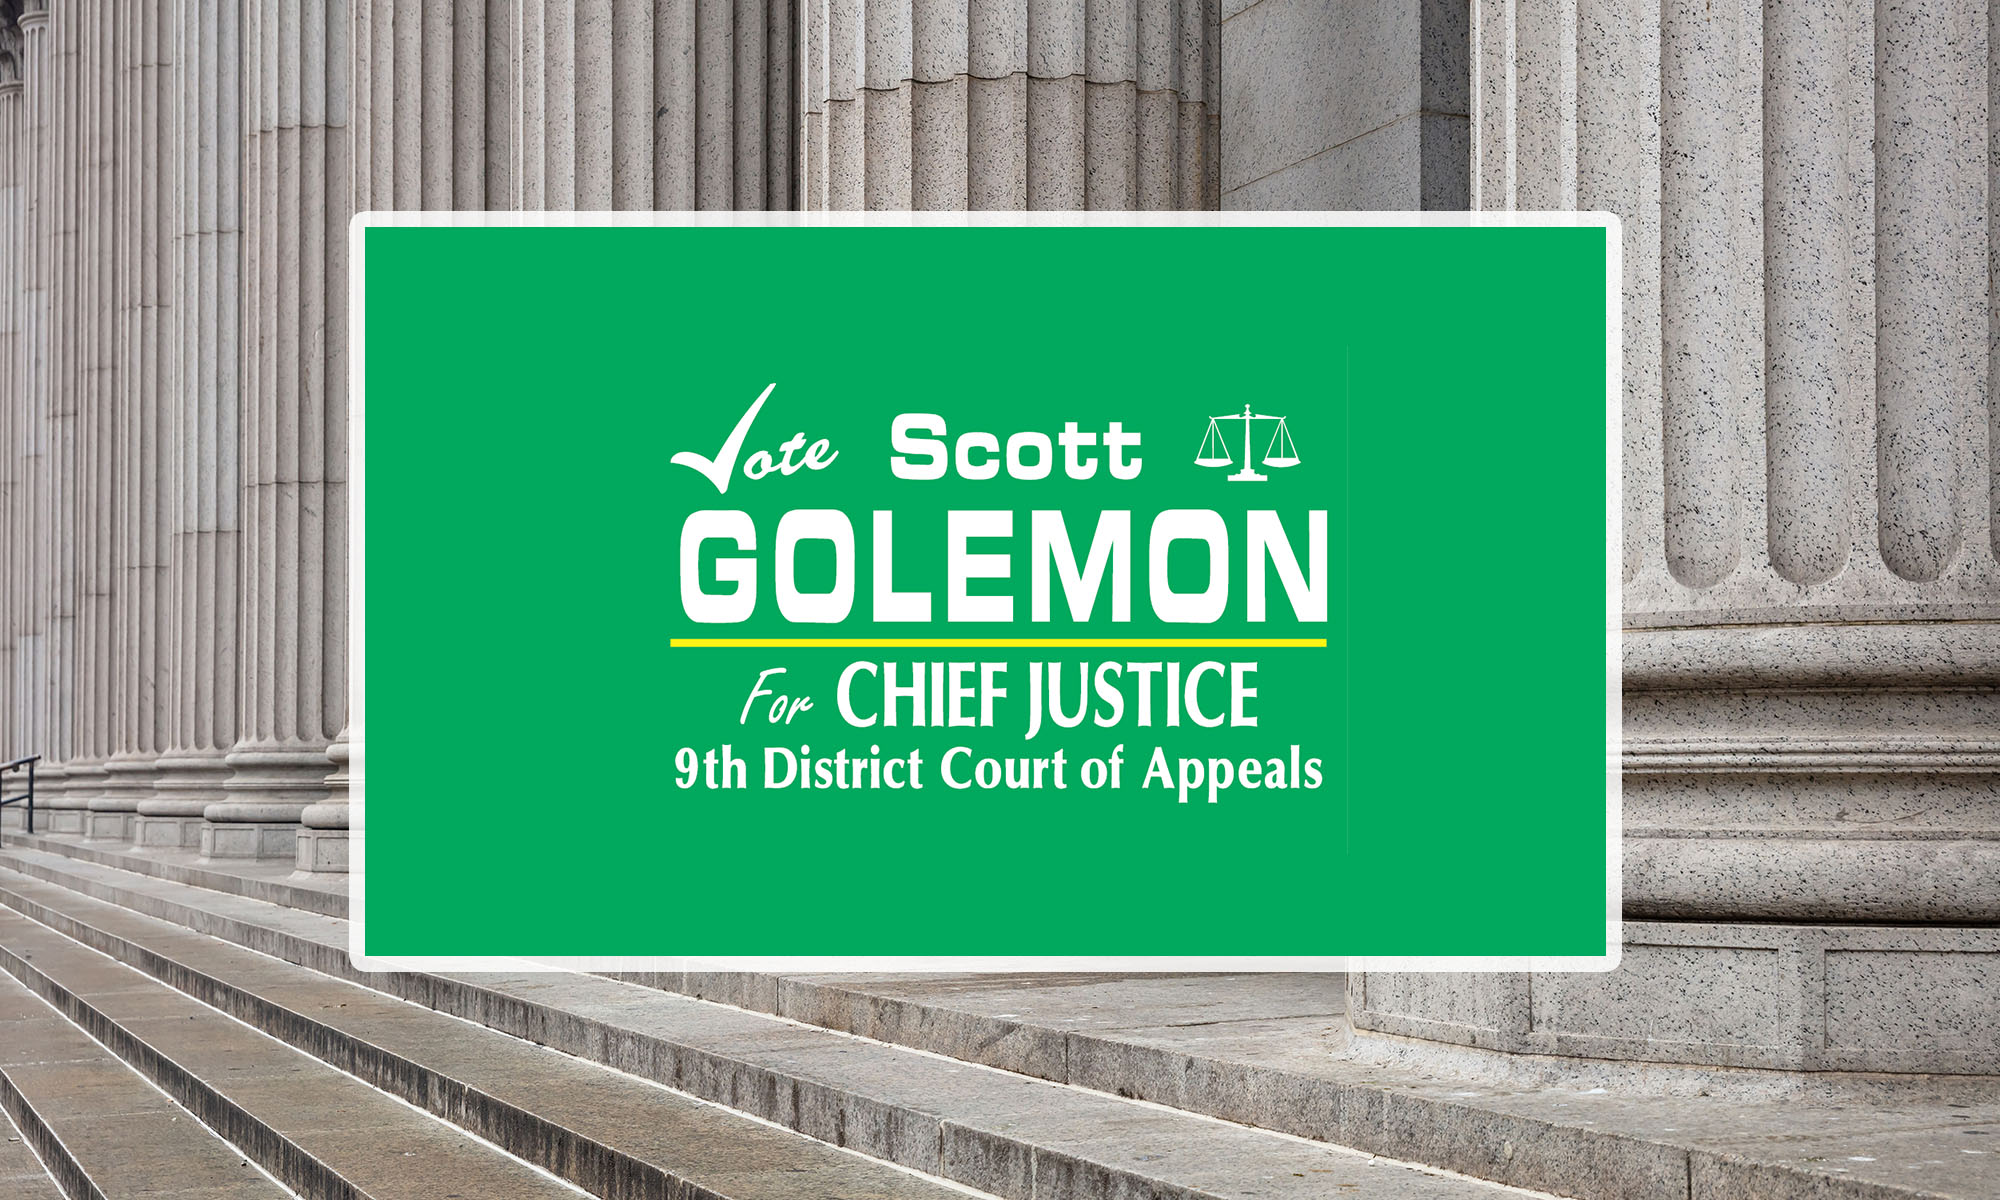 Scott Golemon for Chief Justice, 9th Court of Appeals